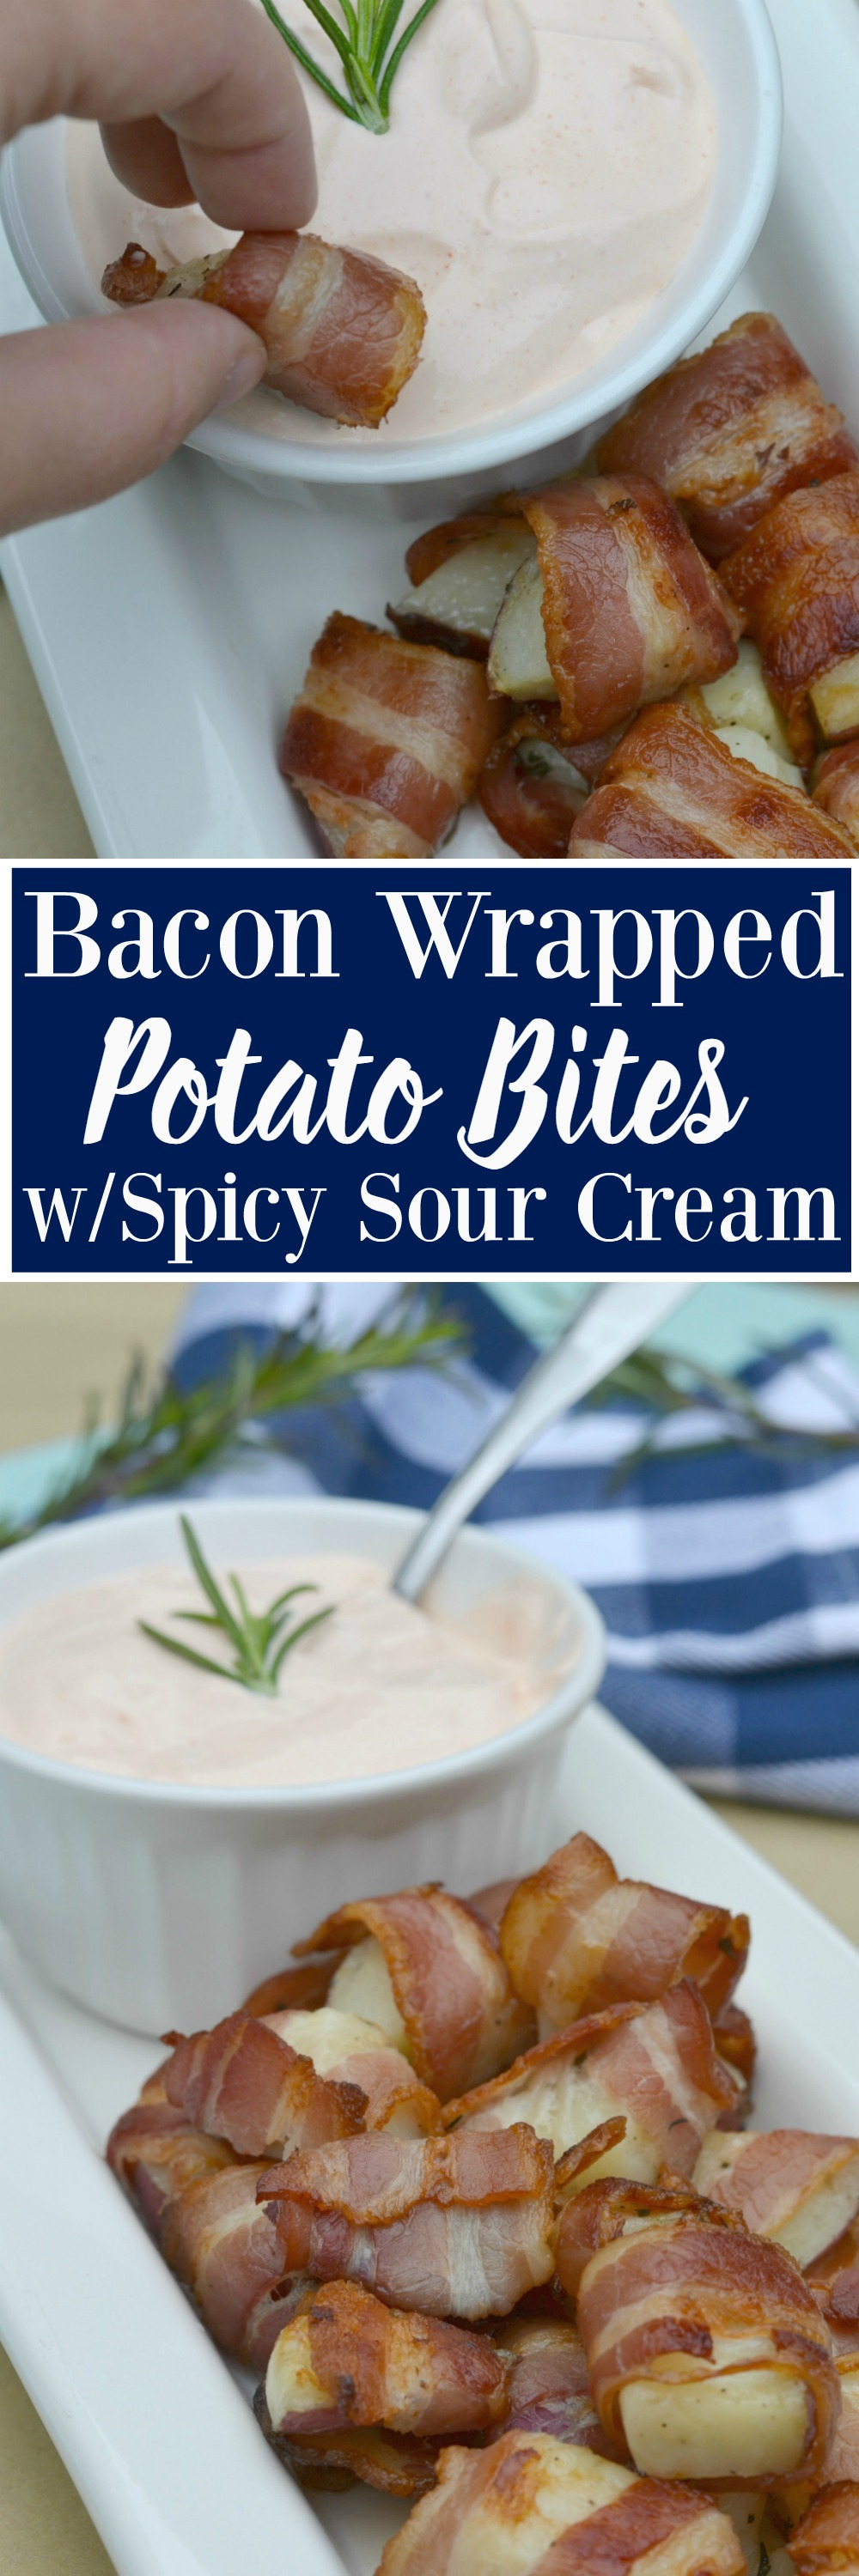 Bacon Wrapped Potato Bites with Spicy Sour Cream Dip - Moms Without ...